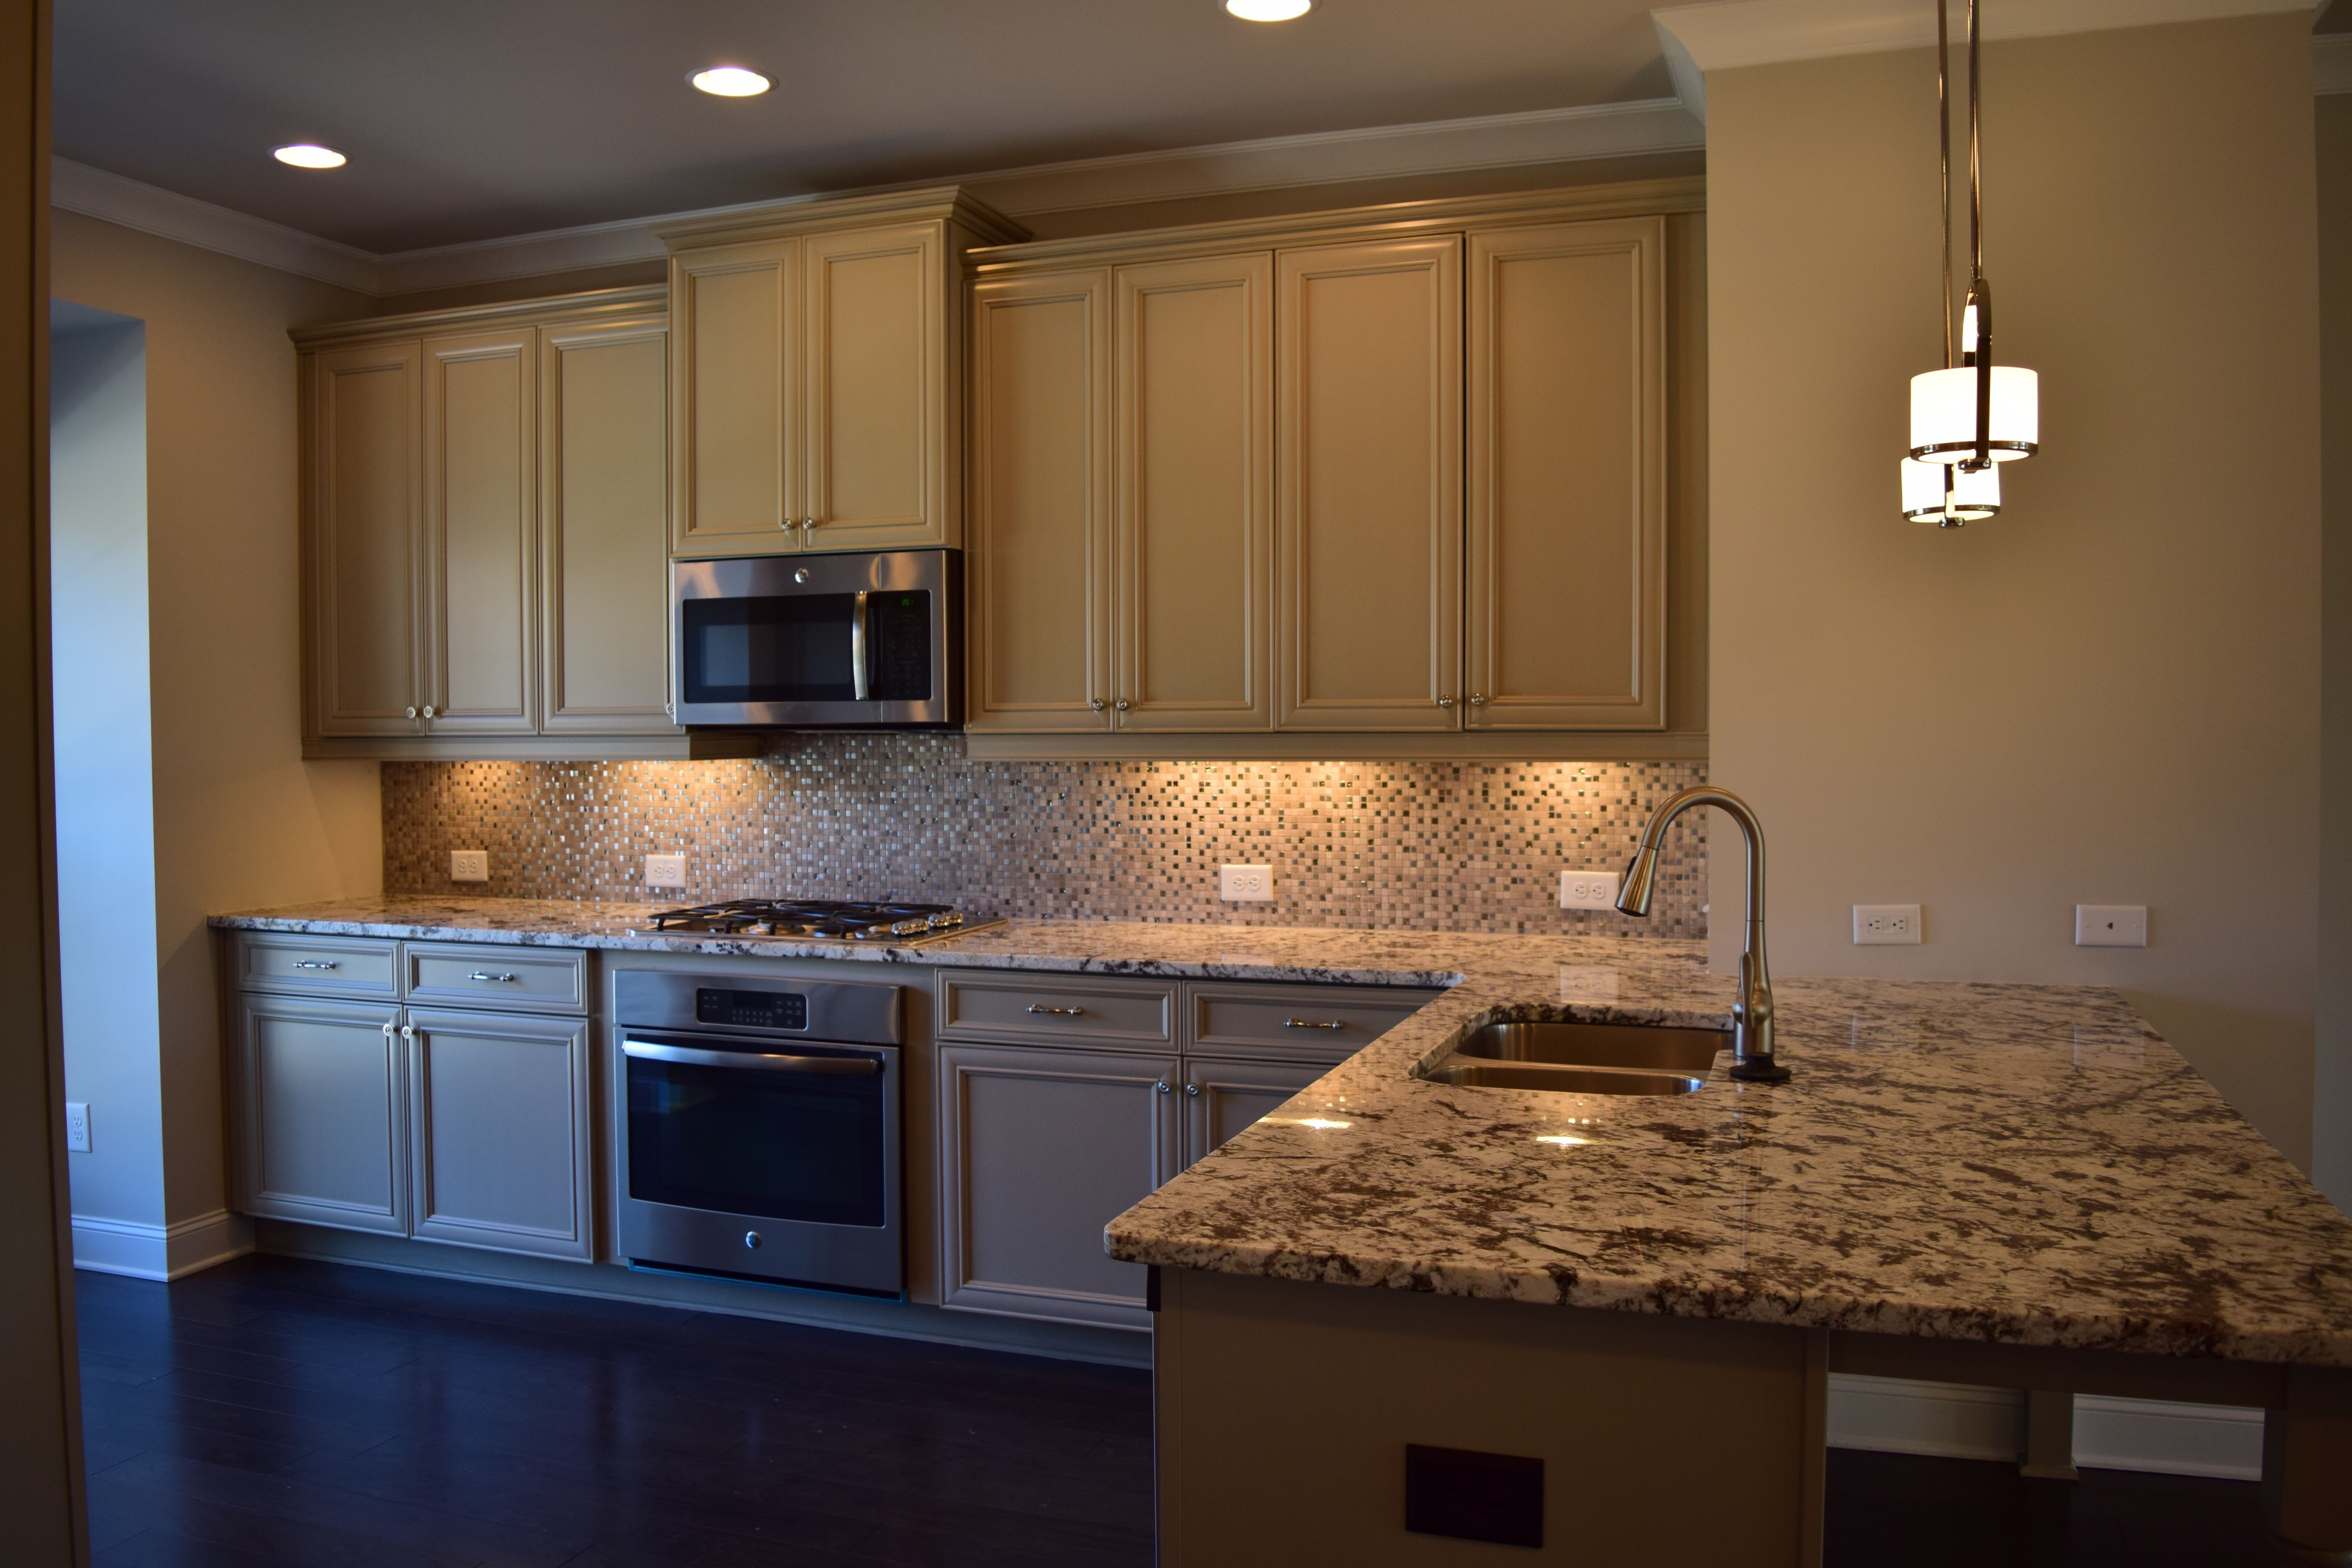 This Freemont Kitchen Showcases Granite Counters In White Orion And D Kitchen Cabinets And Backsplash Granite Countertops Kitchen Kitchen Cabinets And Granite